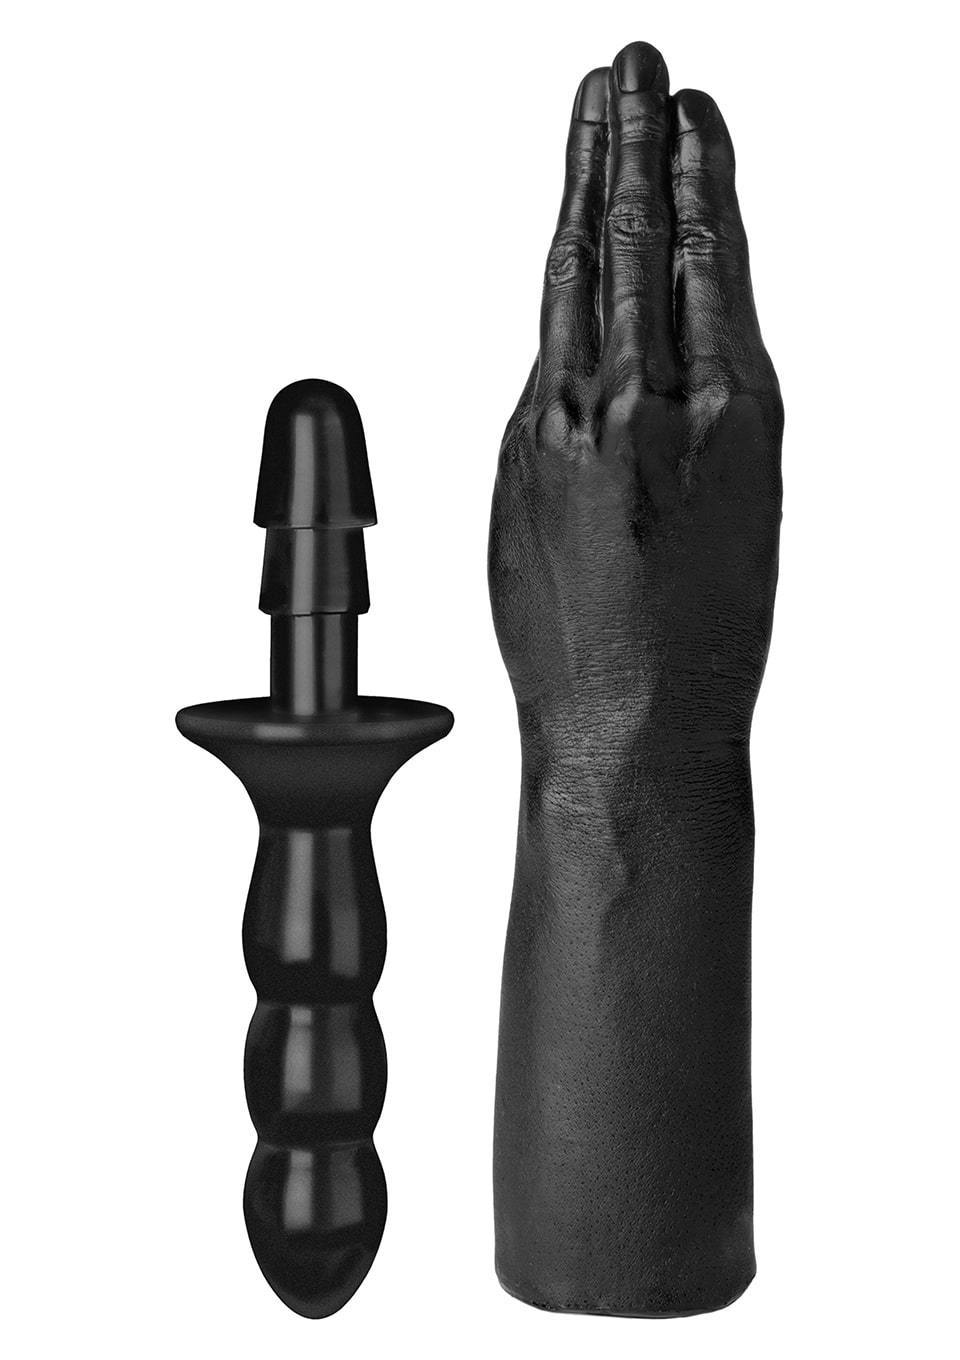 THE HAND WITH VAC-U-LOCK COMPATIBLE | Vibrator, Ladies Sex Toys, Sex Toys For Women, Sex Toys, Adult Toys | My Sex Shop